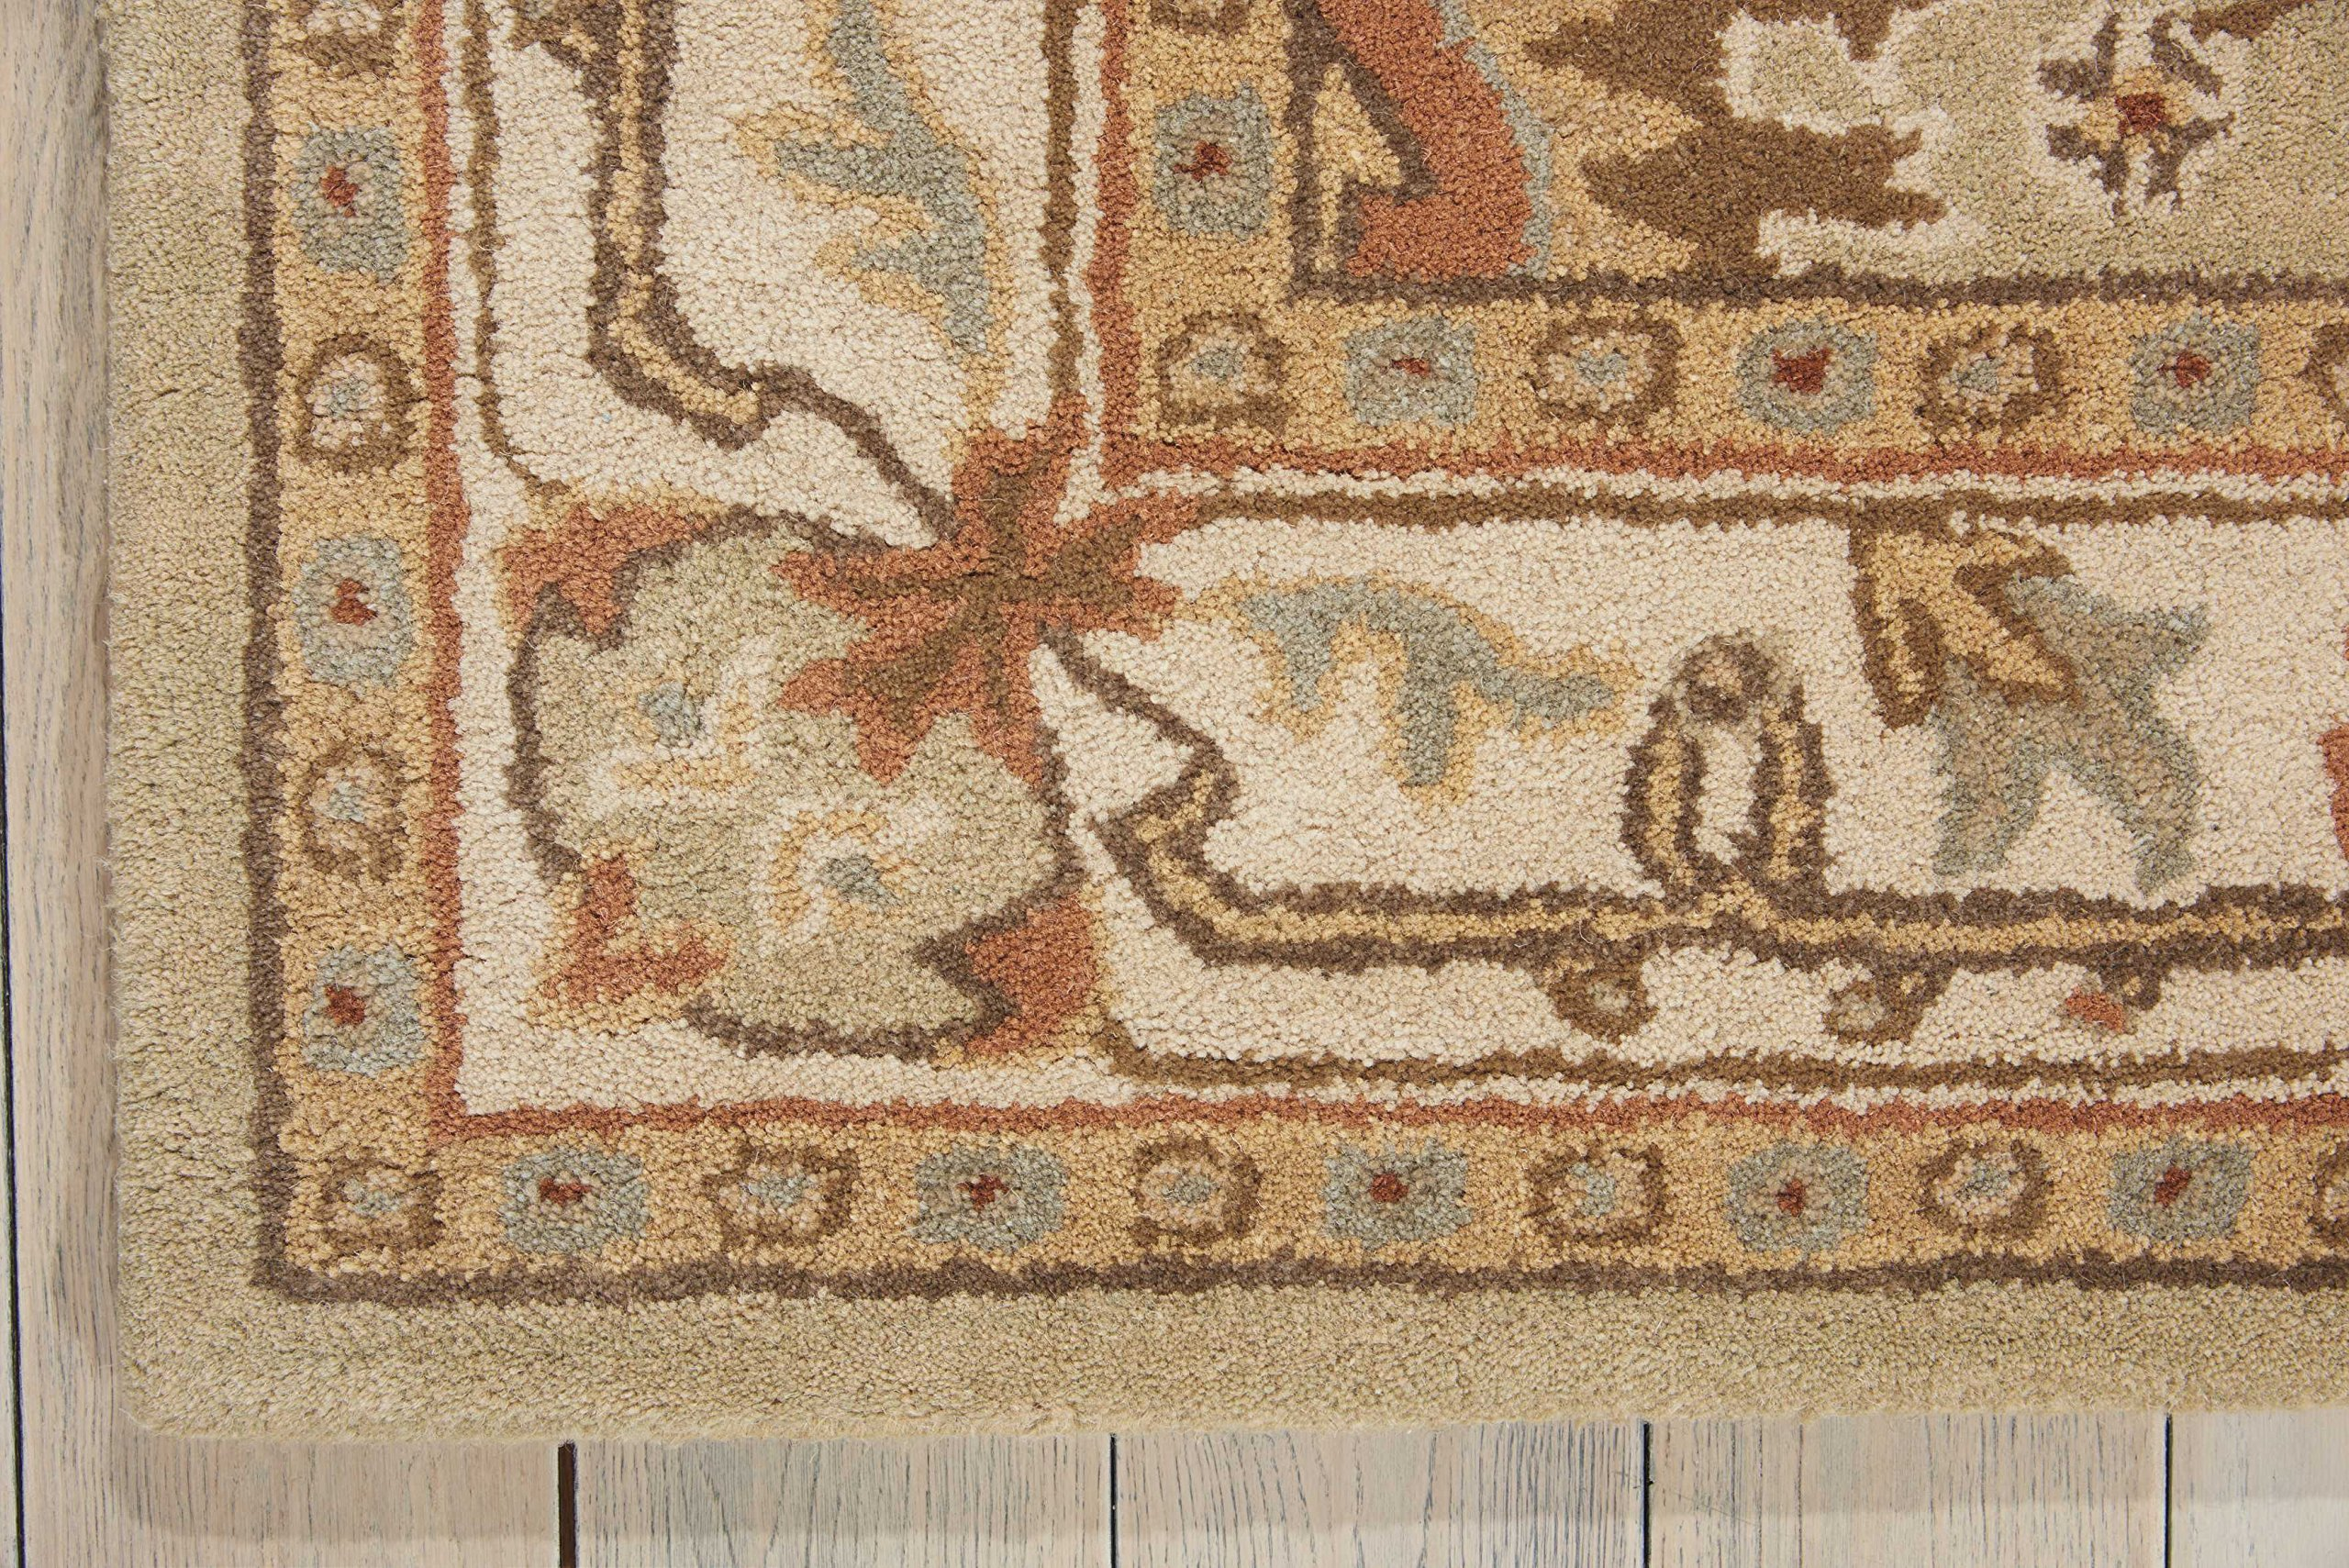 Nourison India House (IH76) Sage Rectangle Area Rug, 2-Feet 6-Inches by 4-Feet (2'6'' x 4') by Nourison (Image #4)